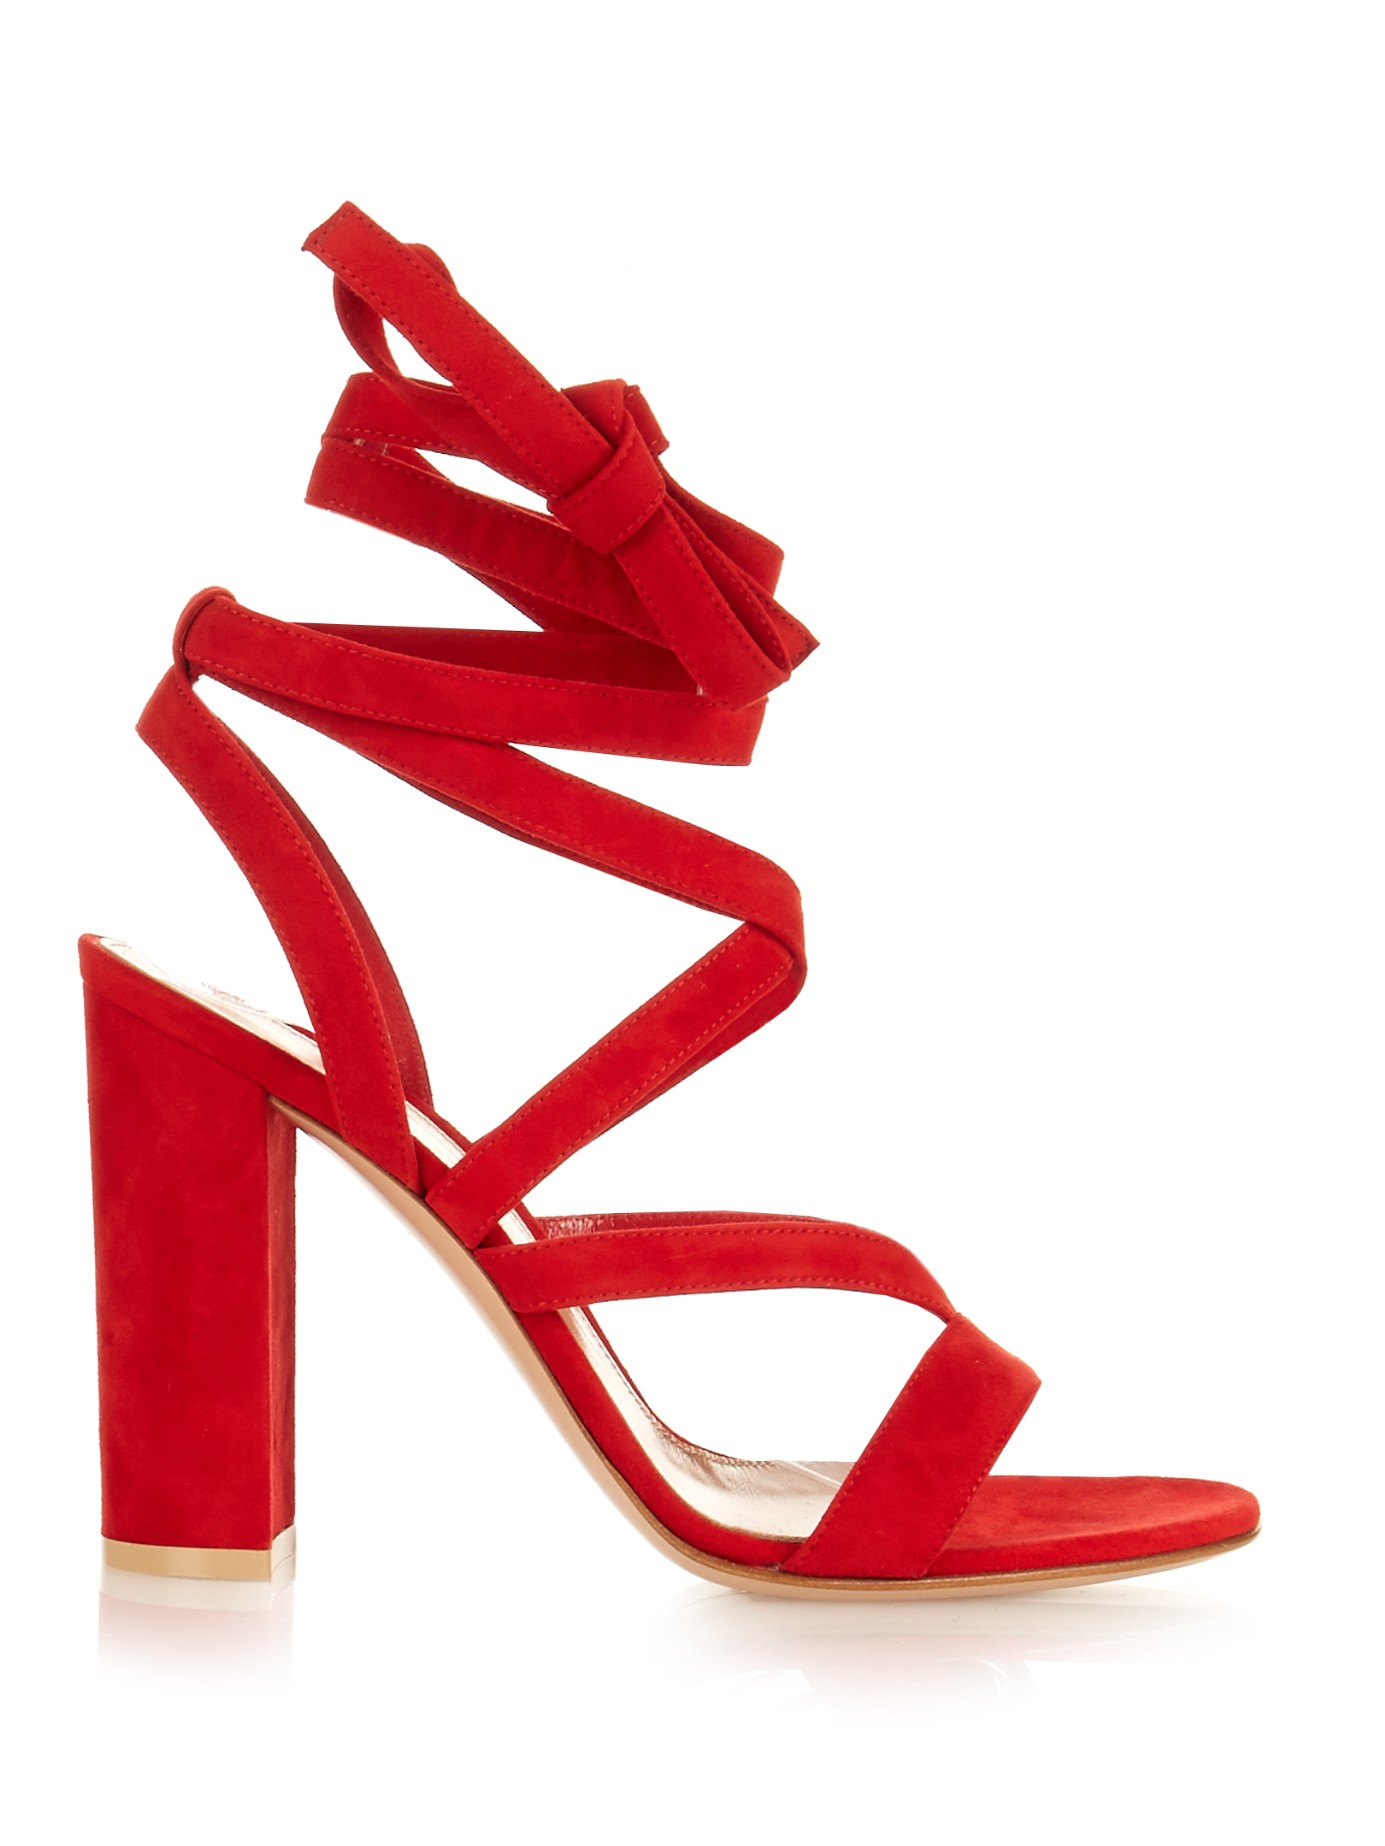 394f3b72e2c Lyst - Gianvito Rossi Janis Suede Sandals in Red